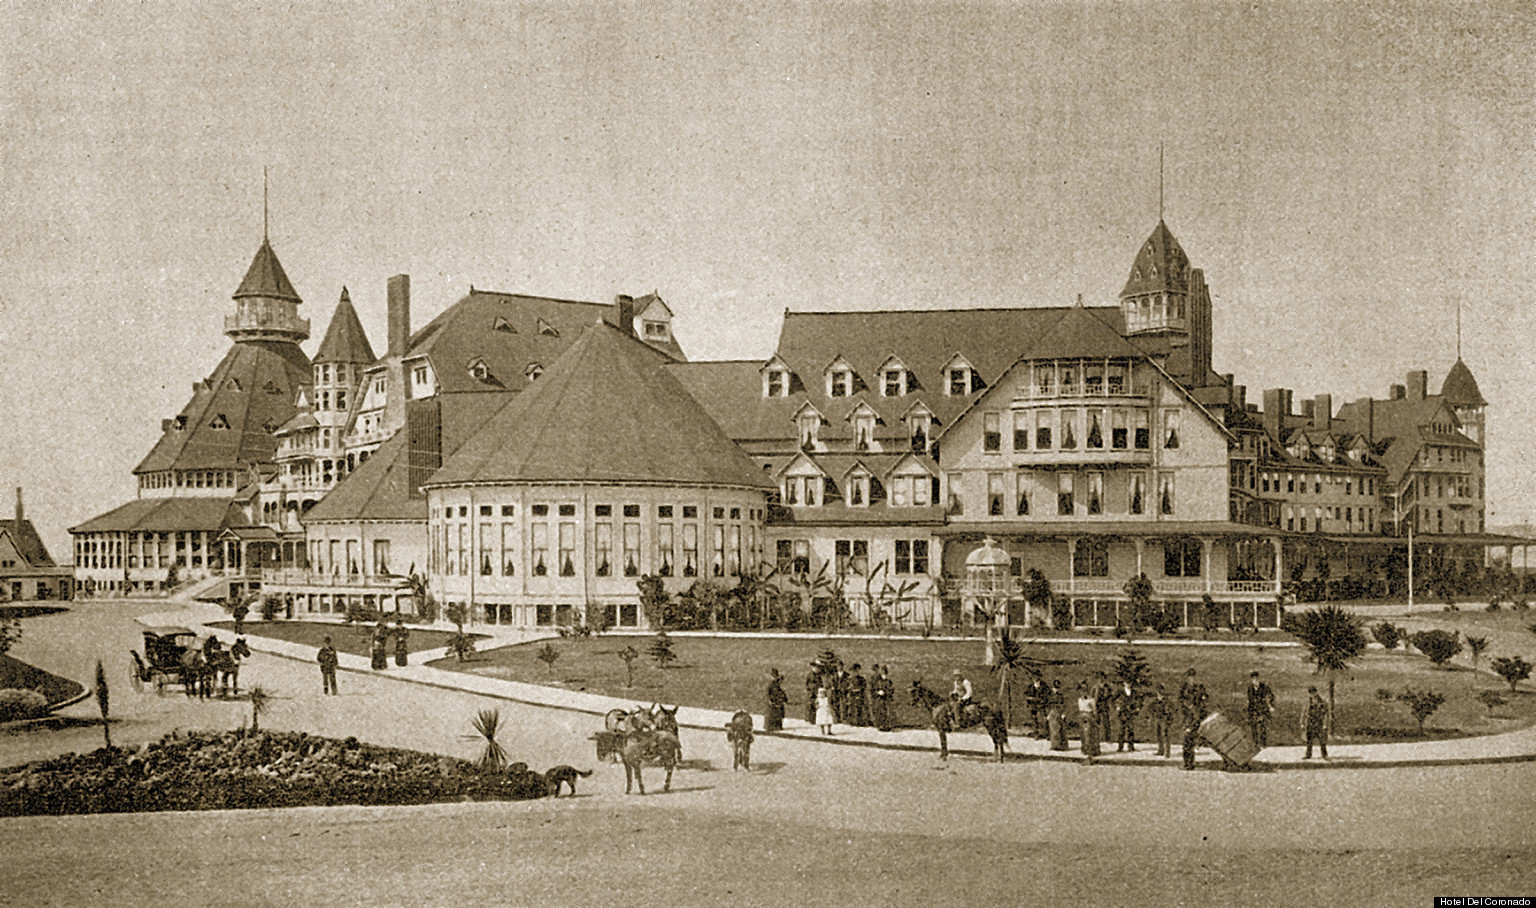 Hotel Del Coronado A Look Back At The Iconic California